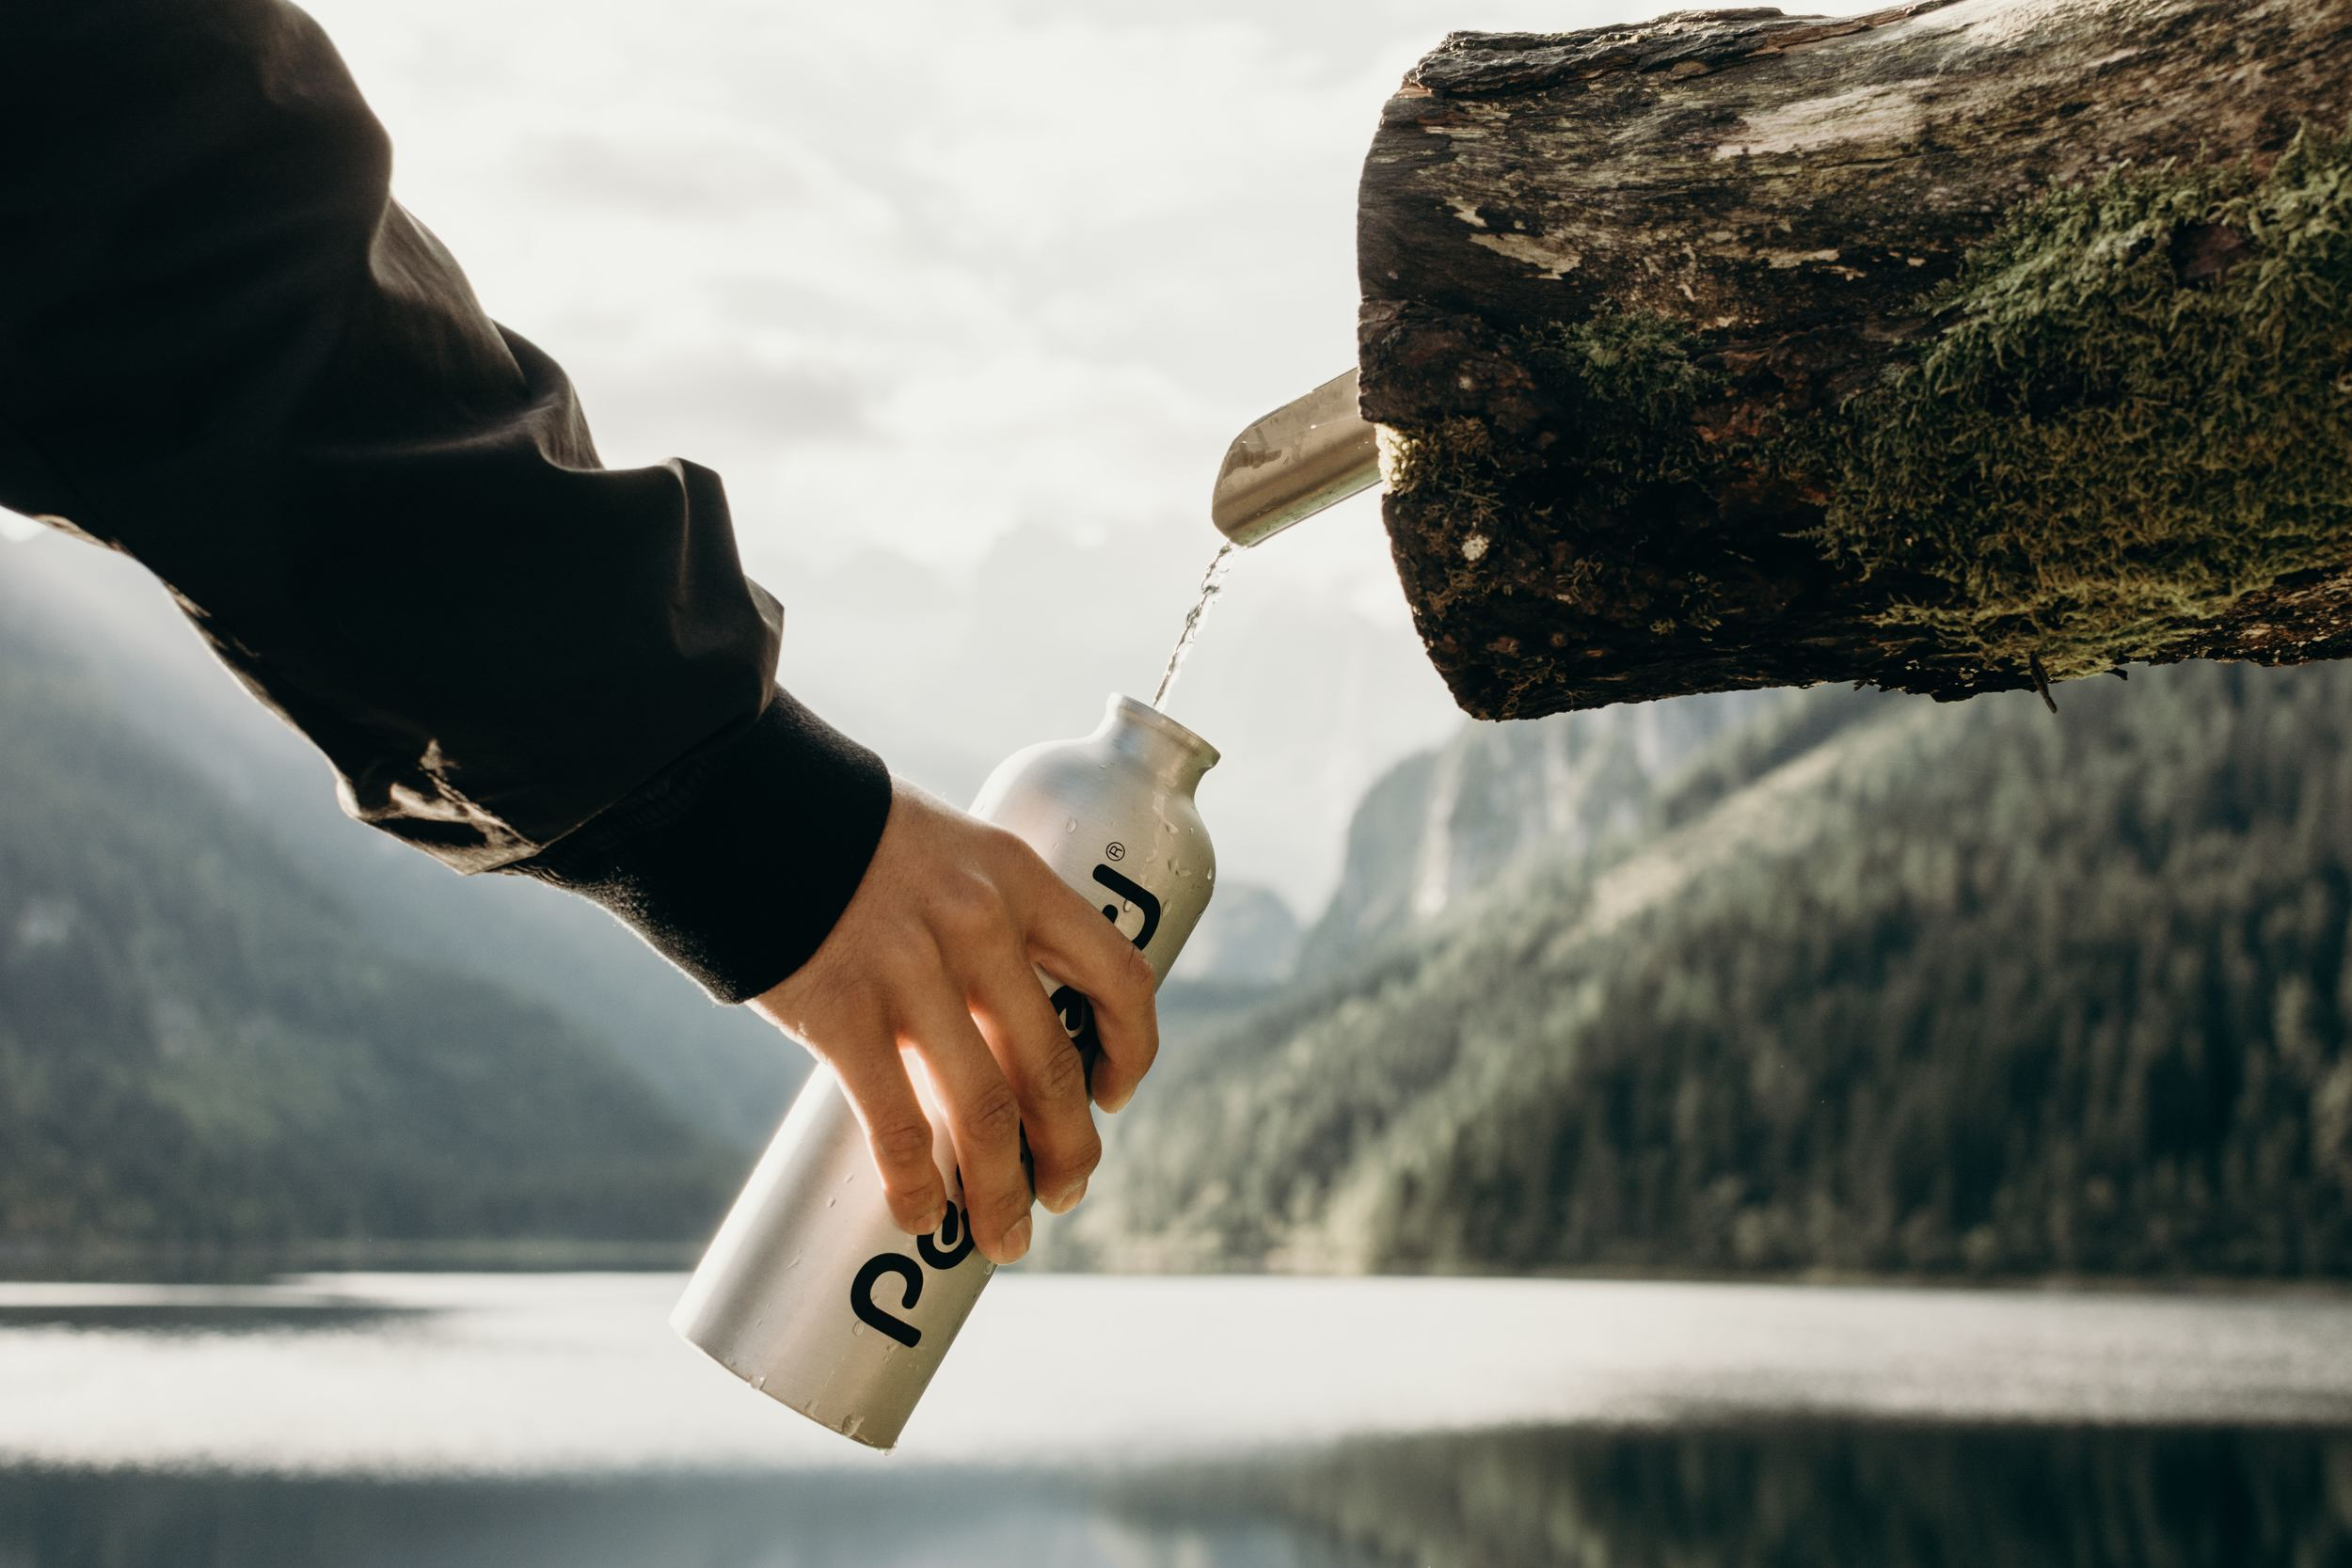 Use Reusable Stainless Steel Water Bottles